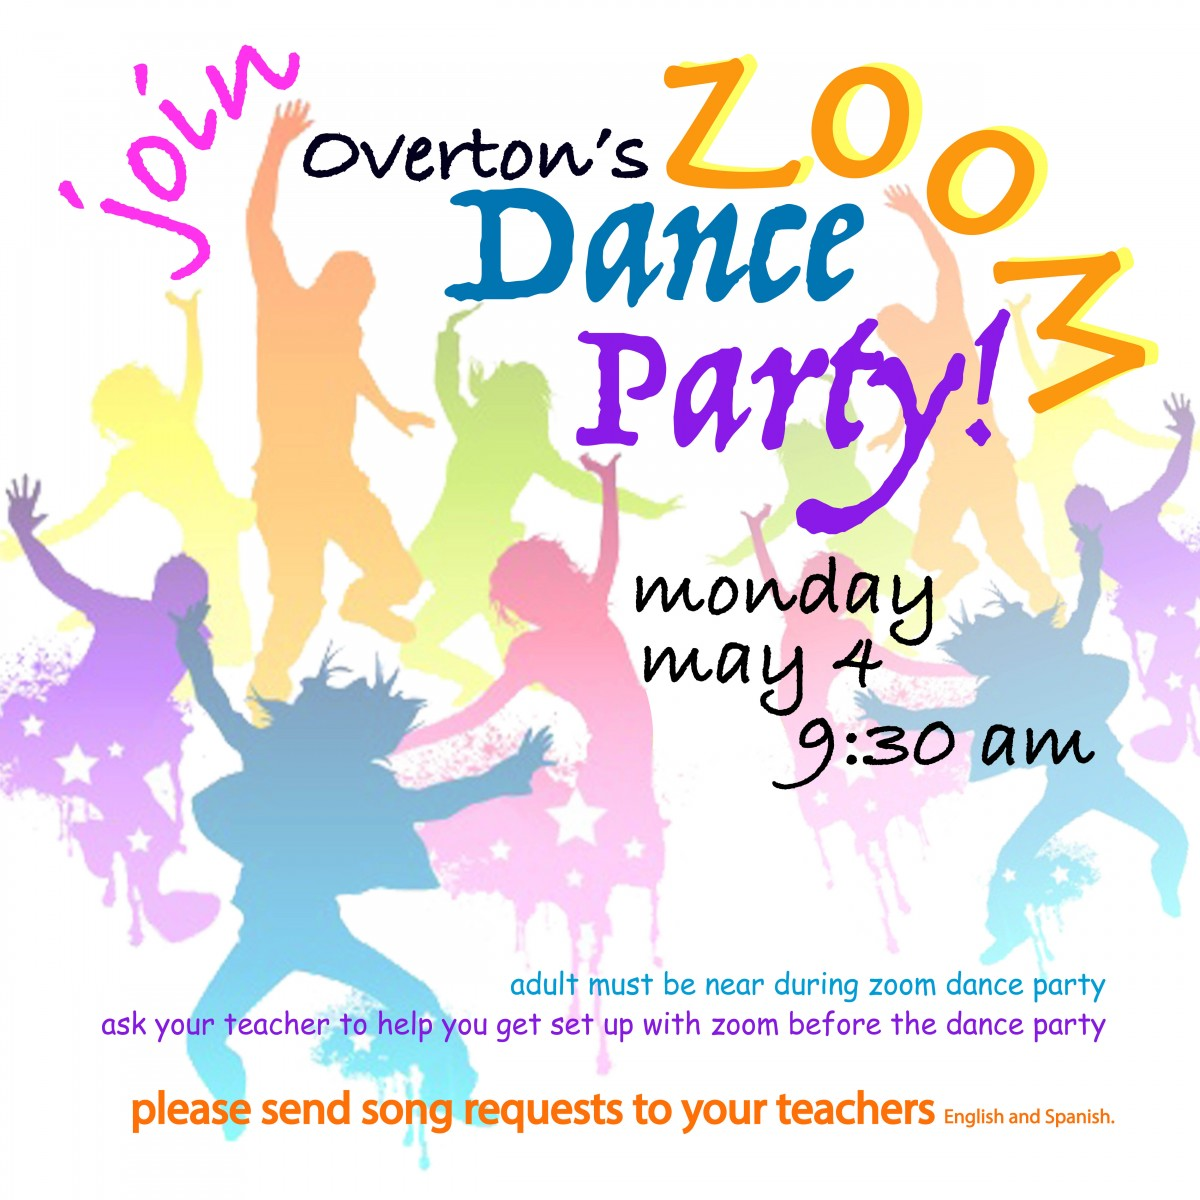 2nd Overton Dance Party!!